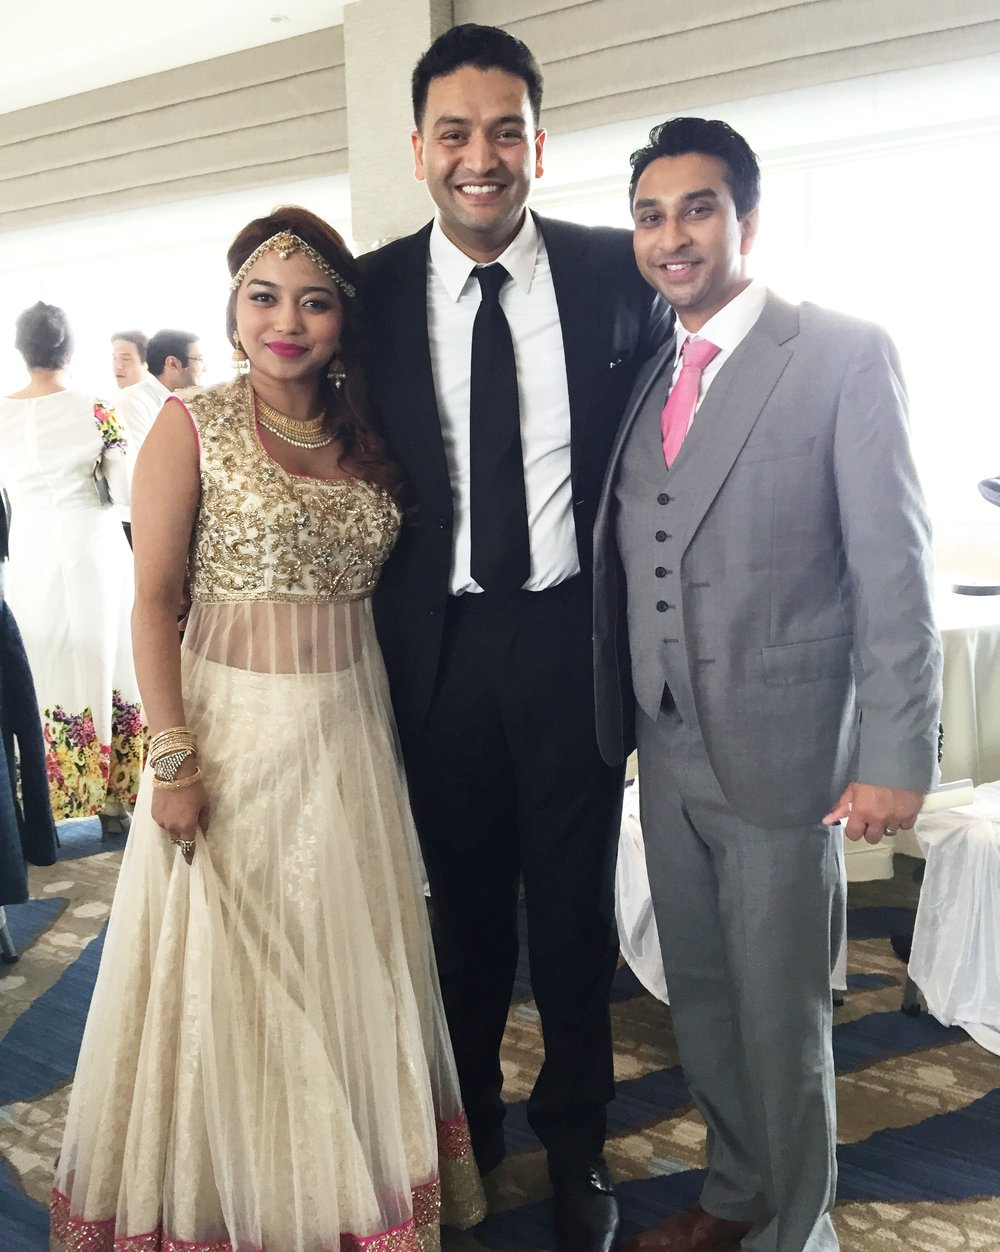 Dj Amrit with the couple at JErsey city hyatt, NJ.